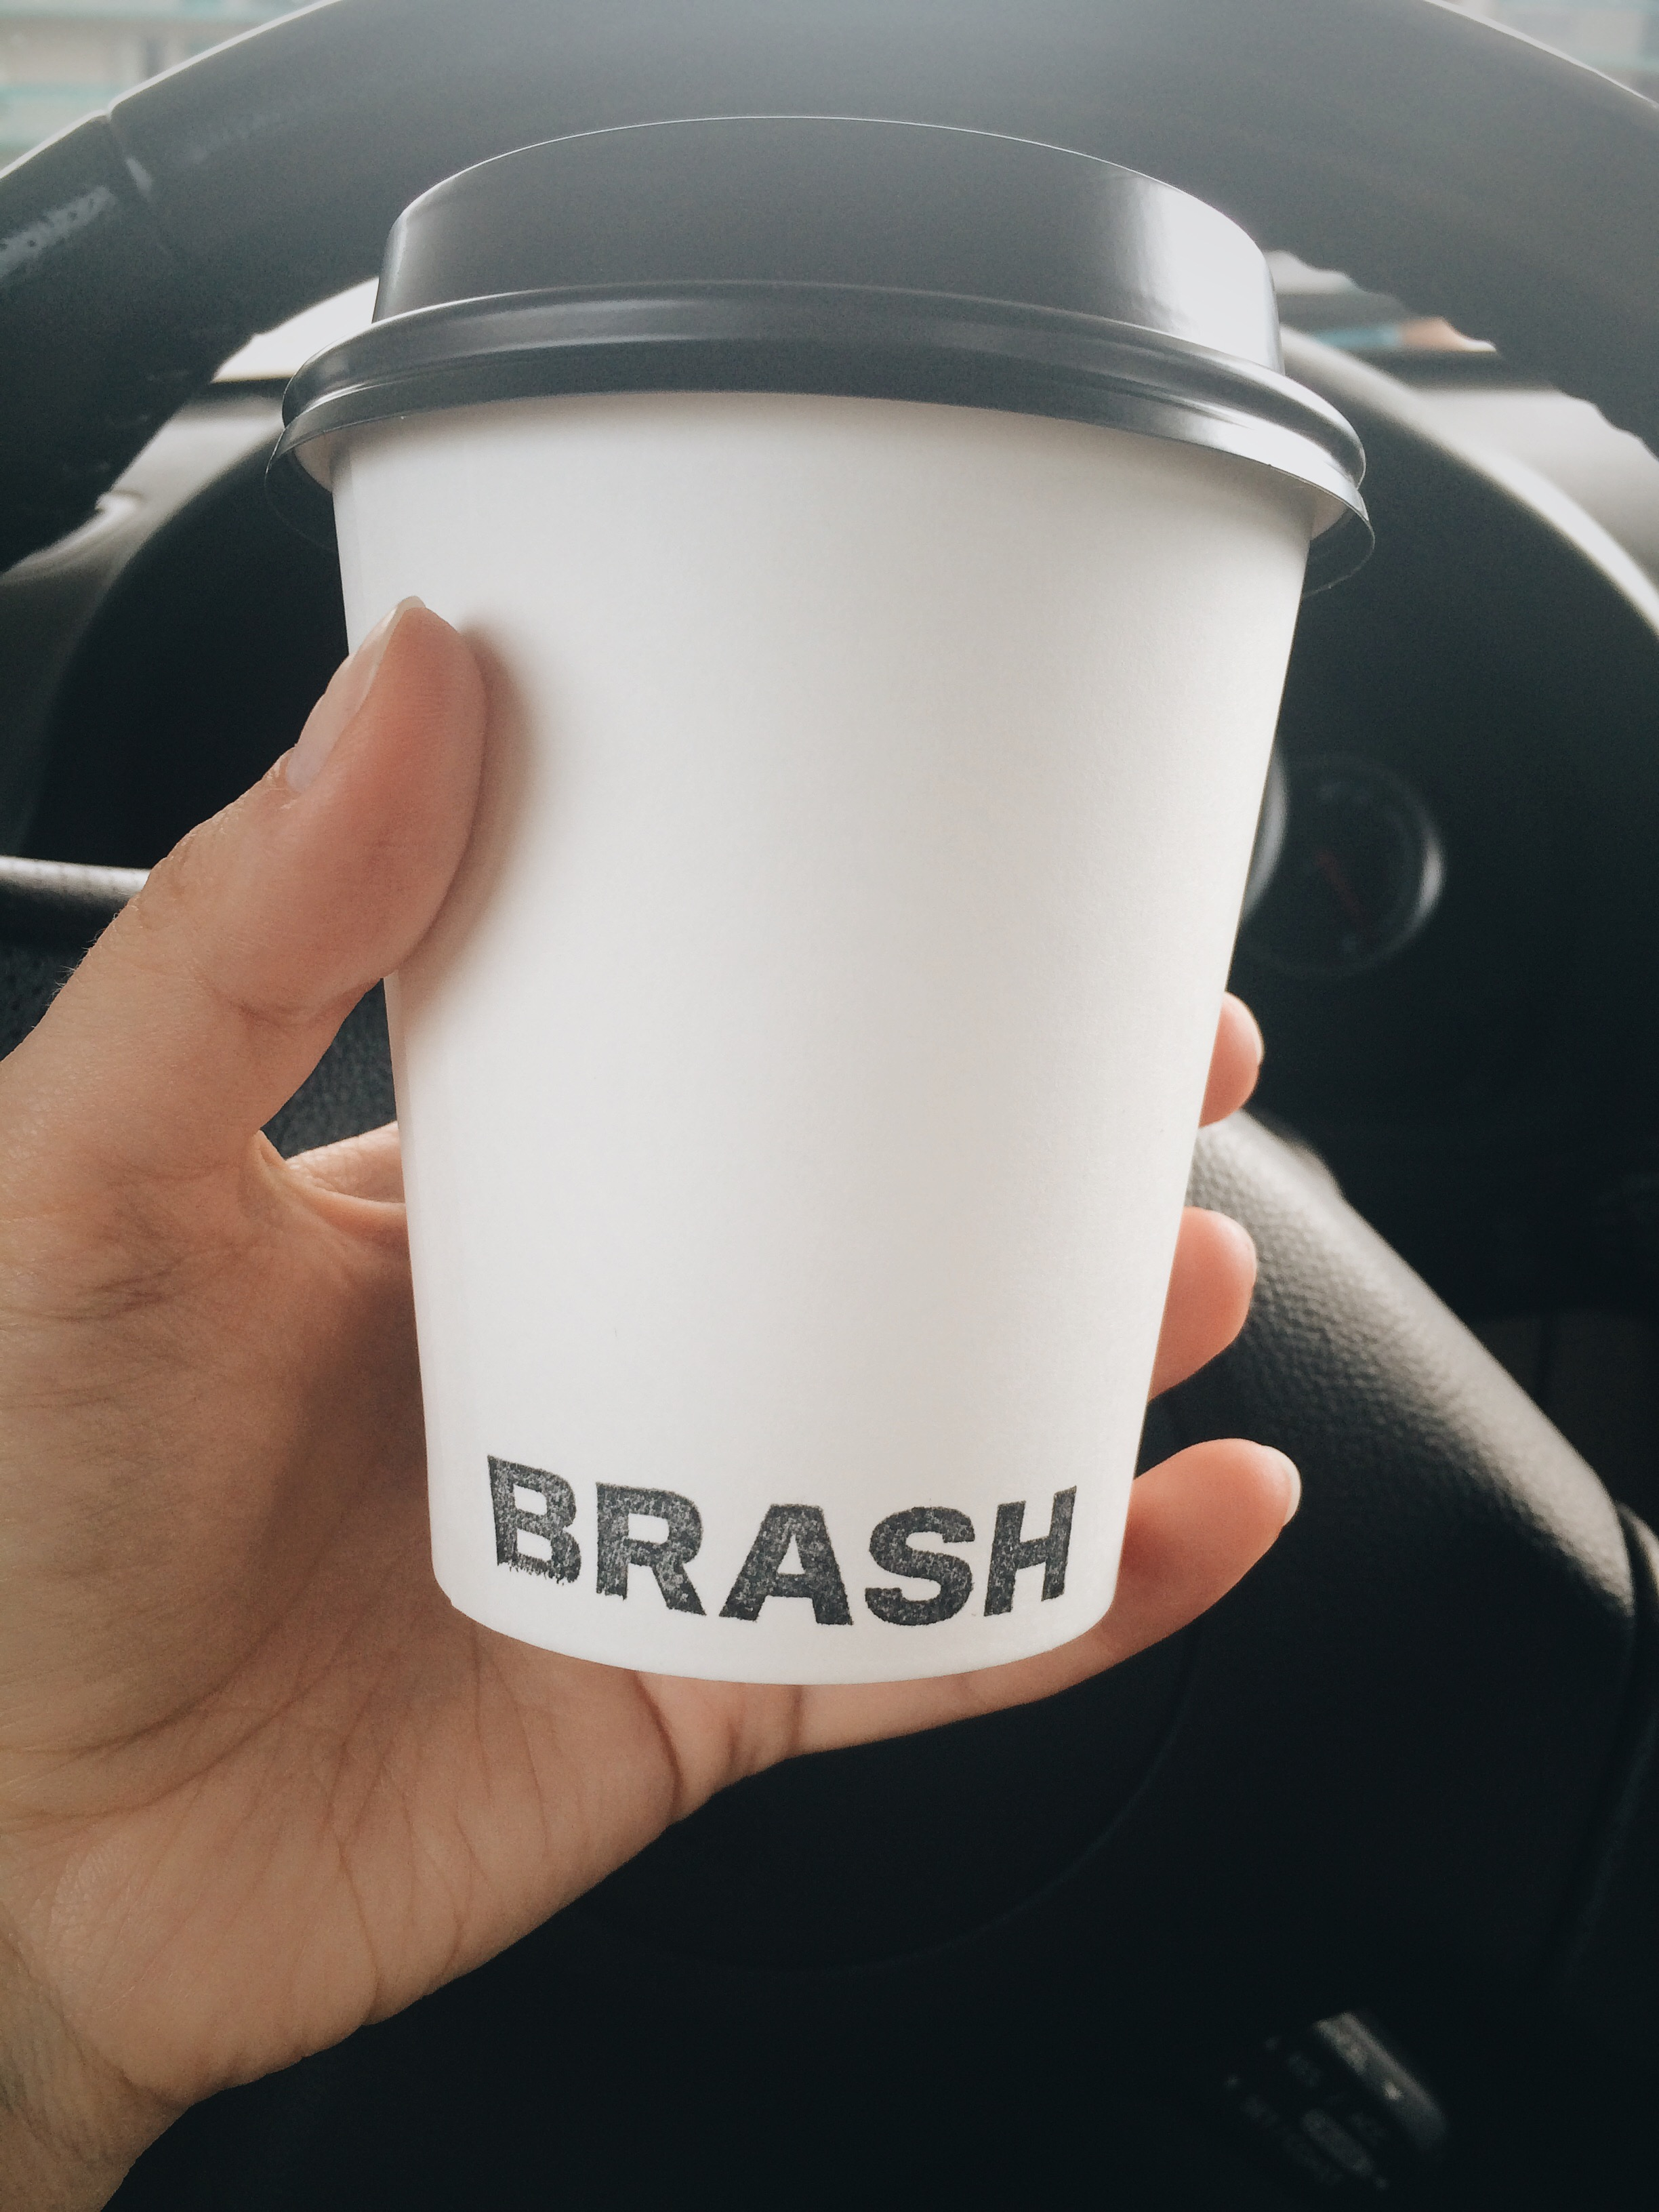 Brash Coffee in Chattanooga, TN